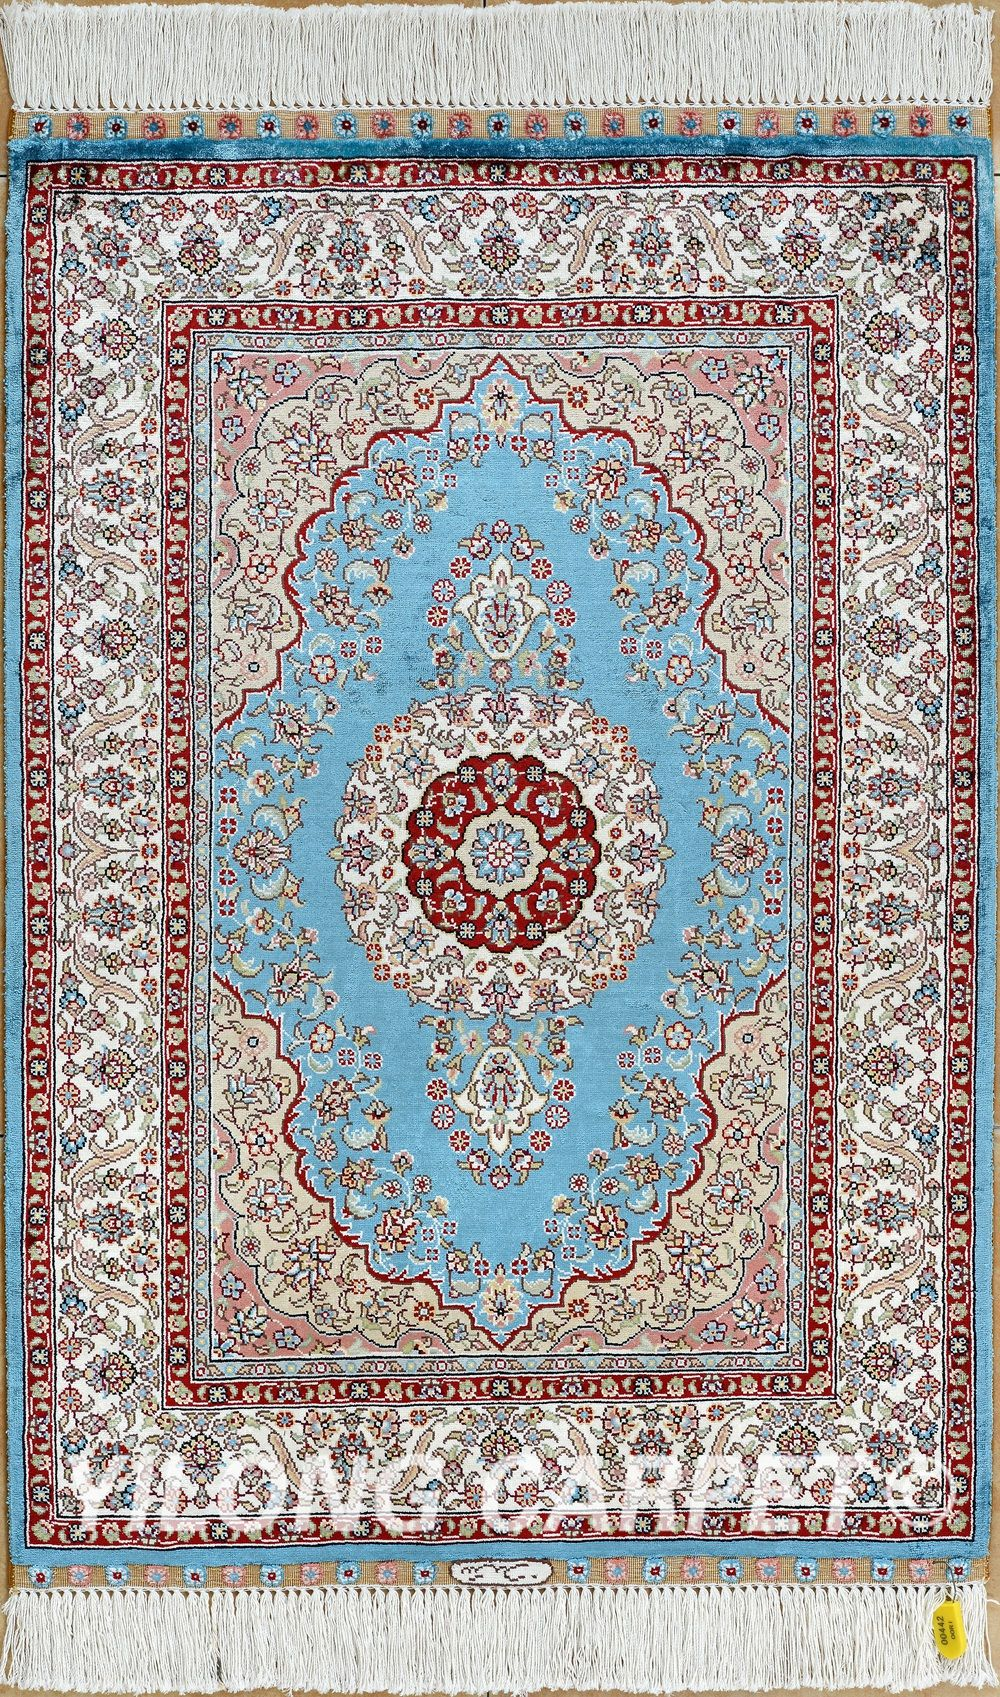 Blue Persian Rug Oriental Turkish Carpet Silk Tabriz Rugs Hereke Area Materials Style Traditional Dyeing Vegetable Technology Hand